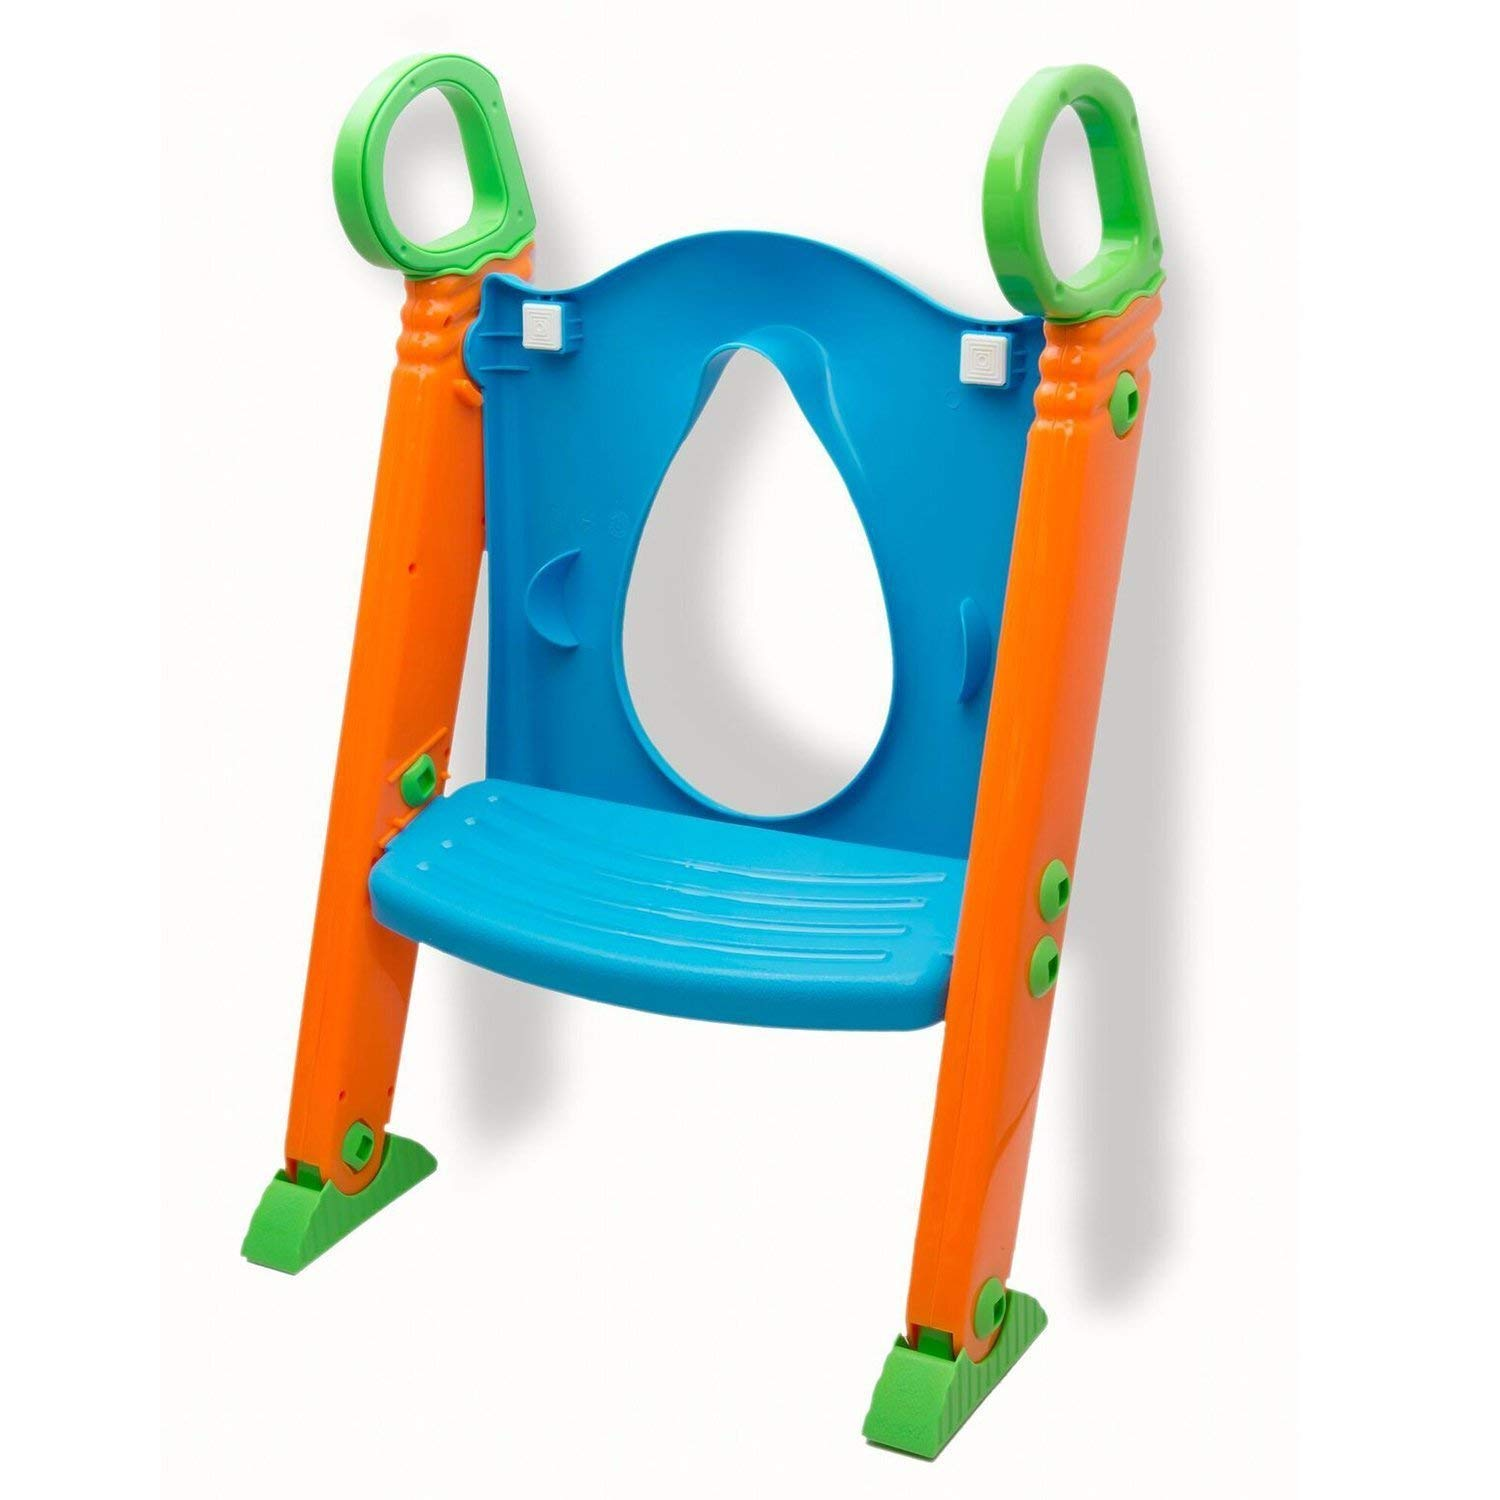 Potty Toilet Seat with Step Stool ladder, (3 in 1) Trainer for Kids Toddlers W/ Handles. Sturdy, Comfortable, Safe, Built In Non-Slip Steps W/ Anti-Slip Pads. Excellent Potty Seat Step Boys Girls Baby by Alayna (Image #5)